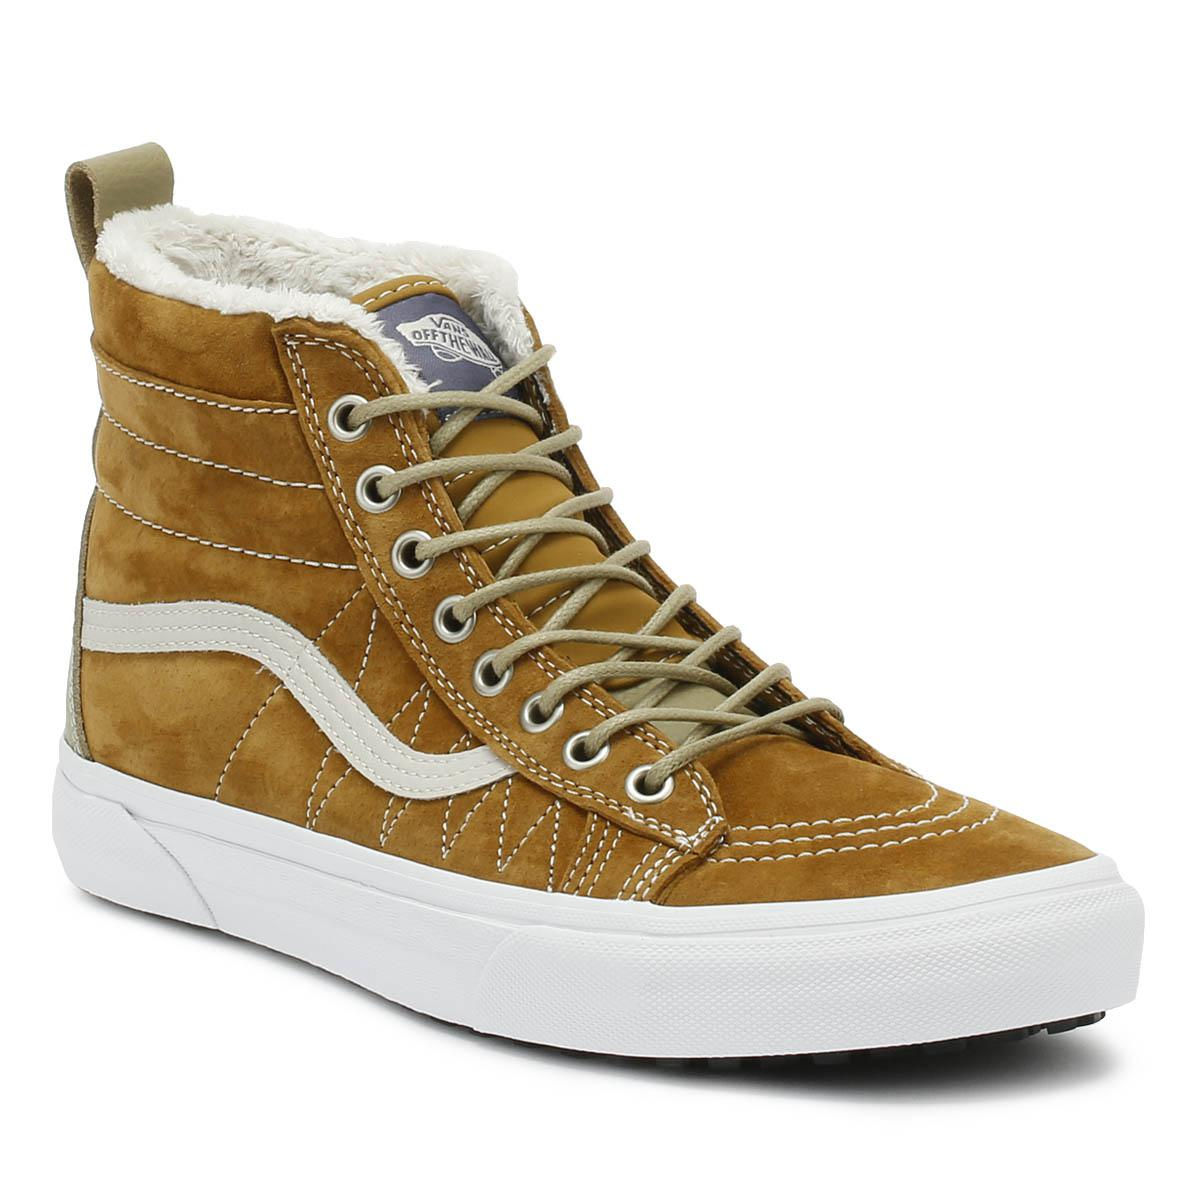 09faf1e594dfb5 Lyst - Vans Sk8-hi Mte Mens Cumin Brown Trainers in Brown for Men